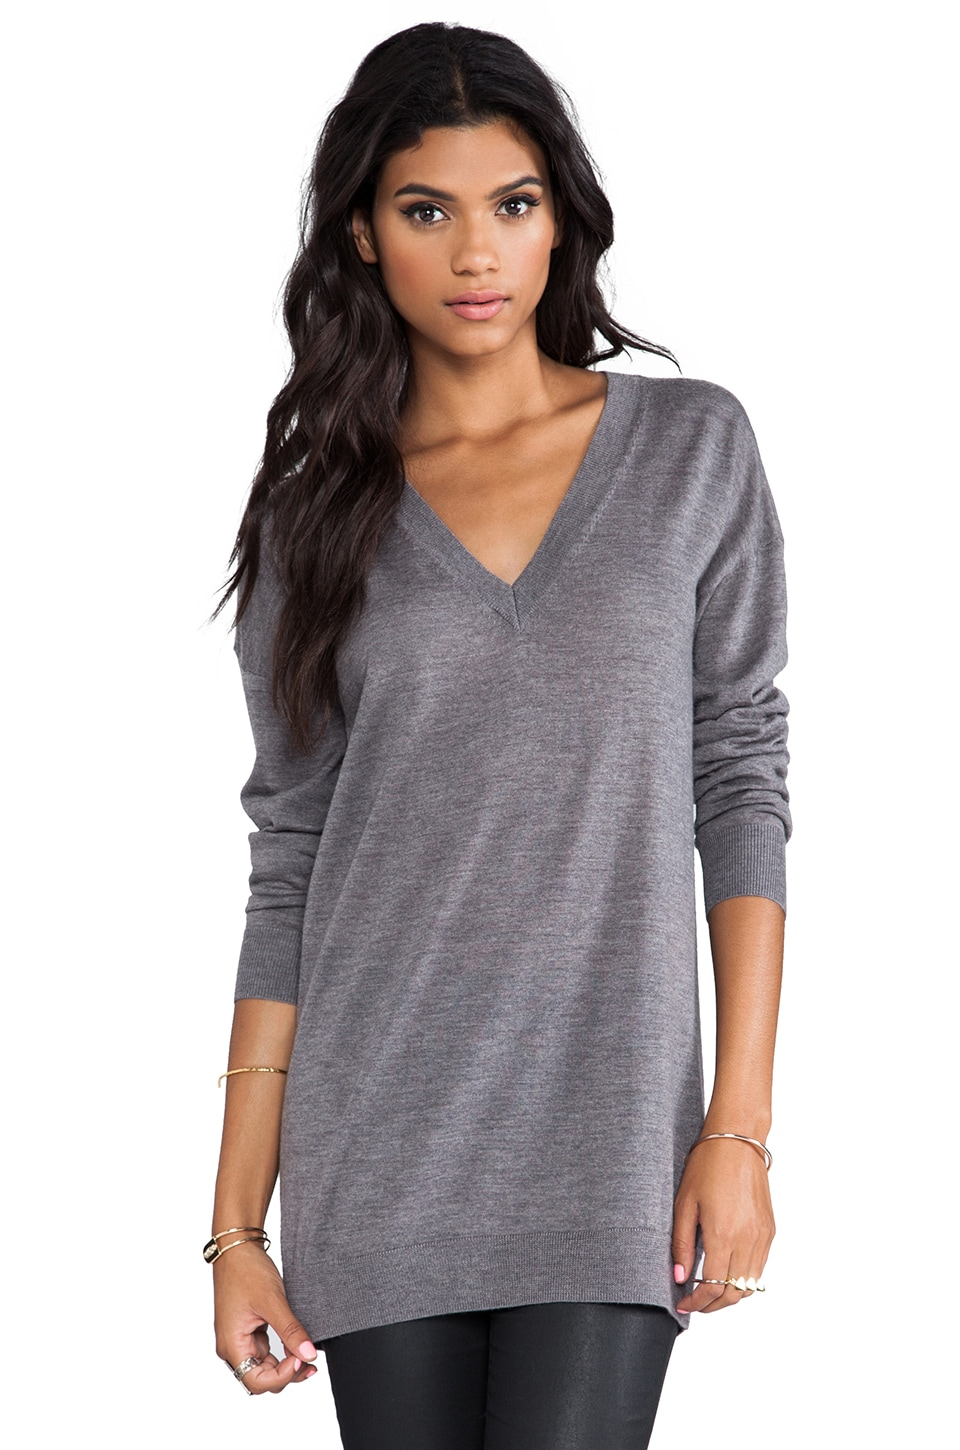 Theory Audrin Oversized V-Neck Sweater in Dark Charcoal